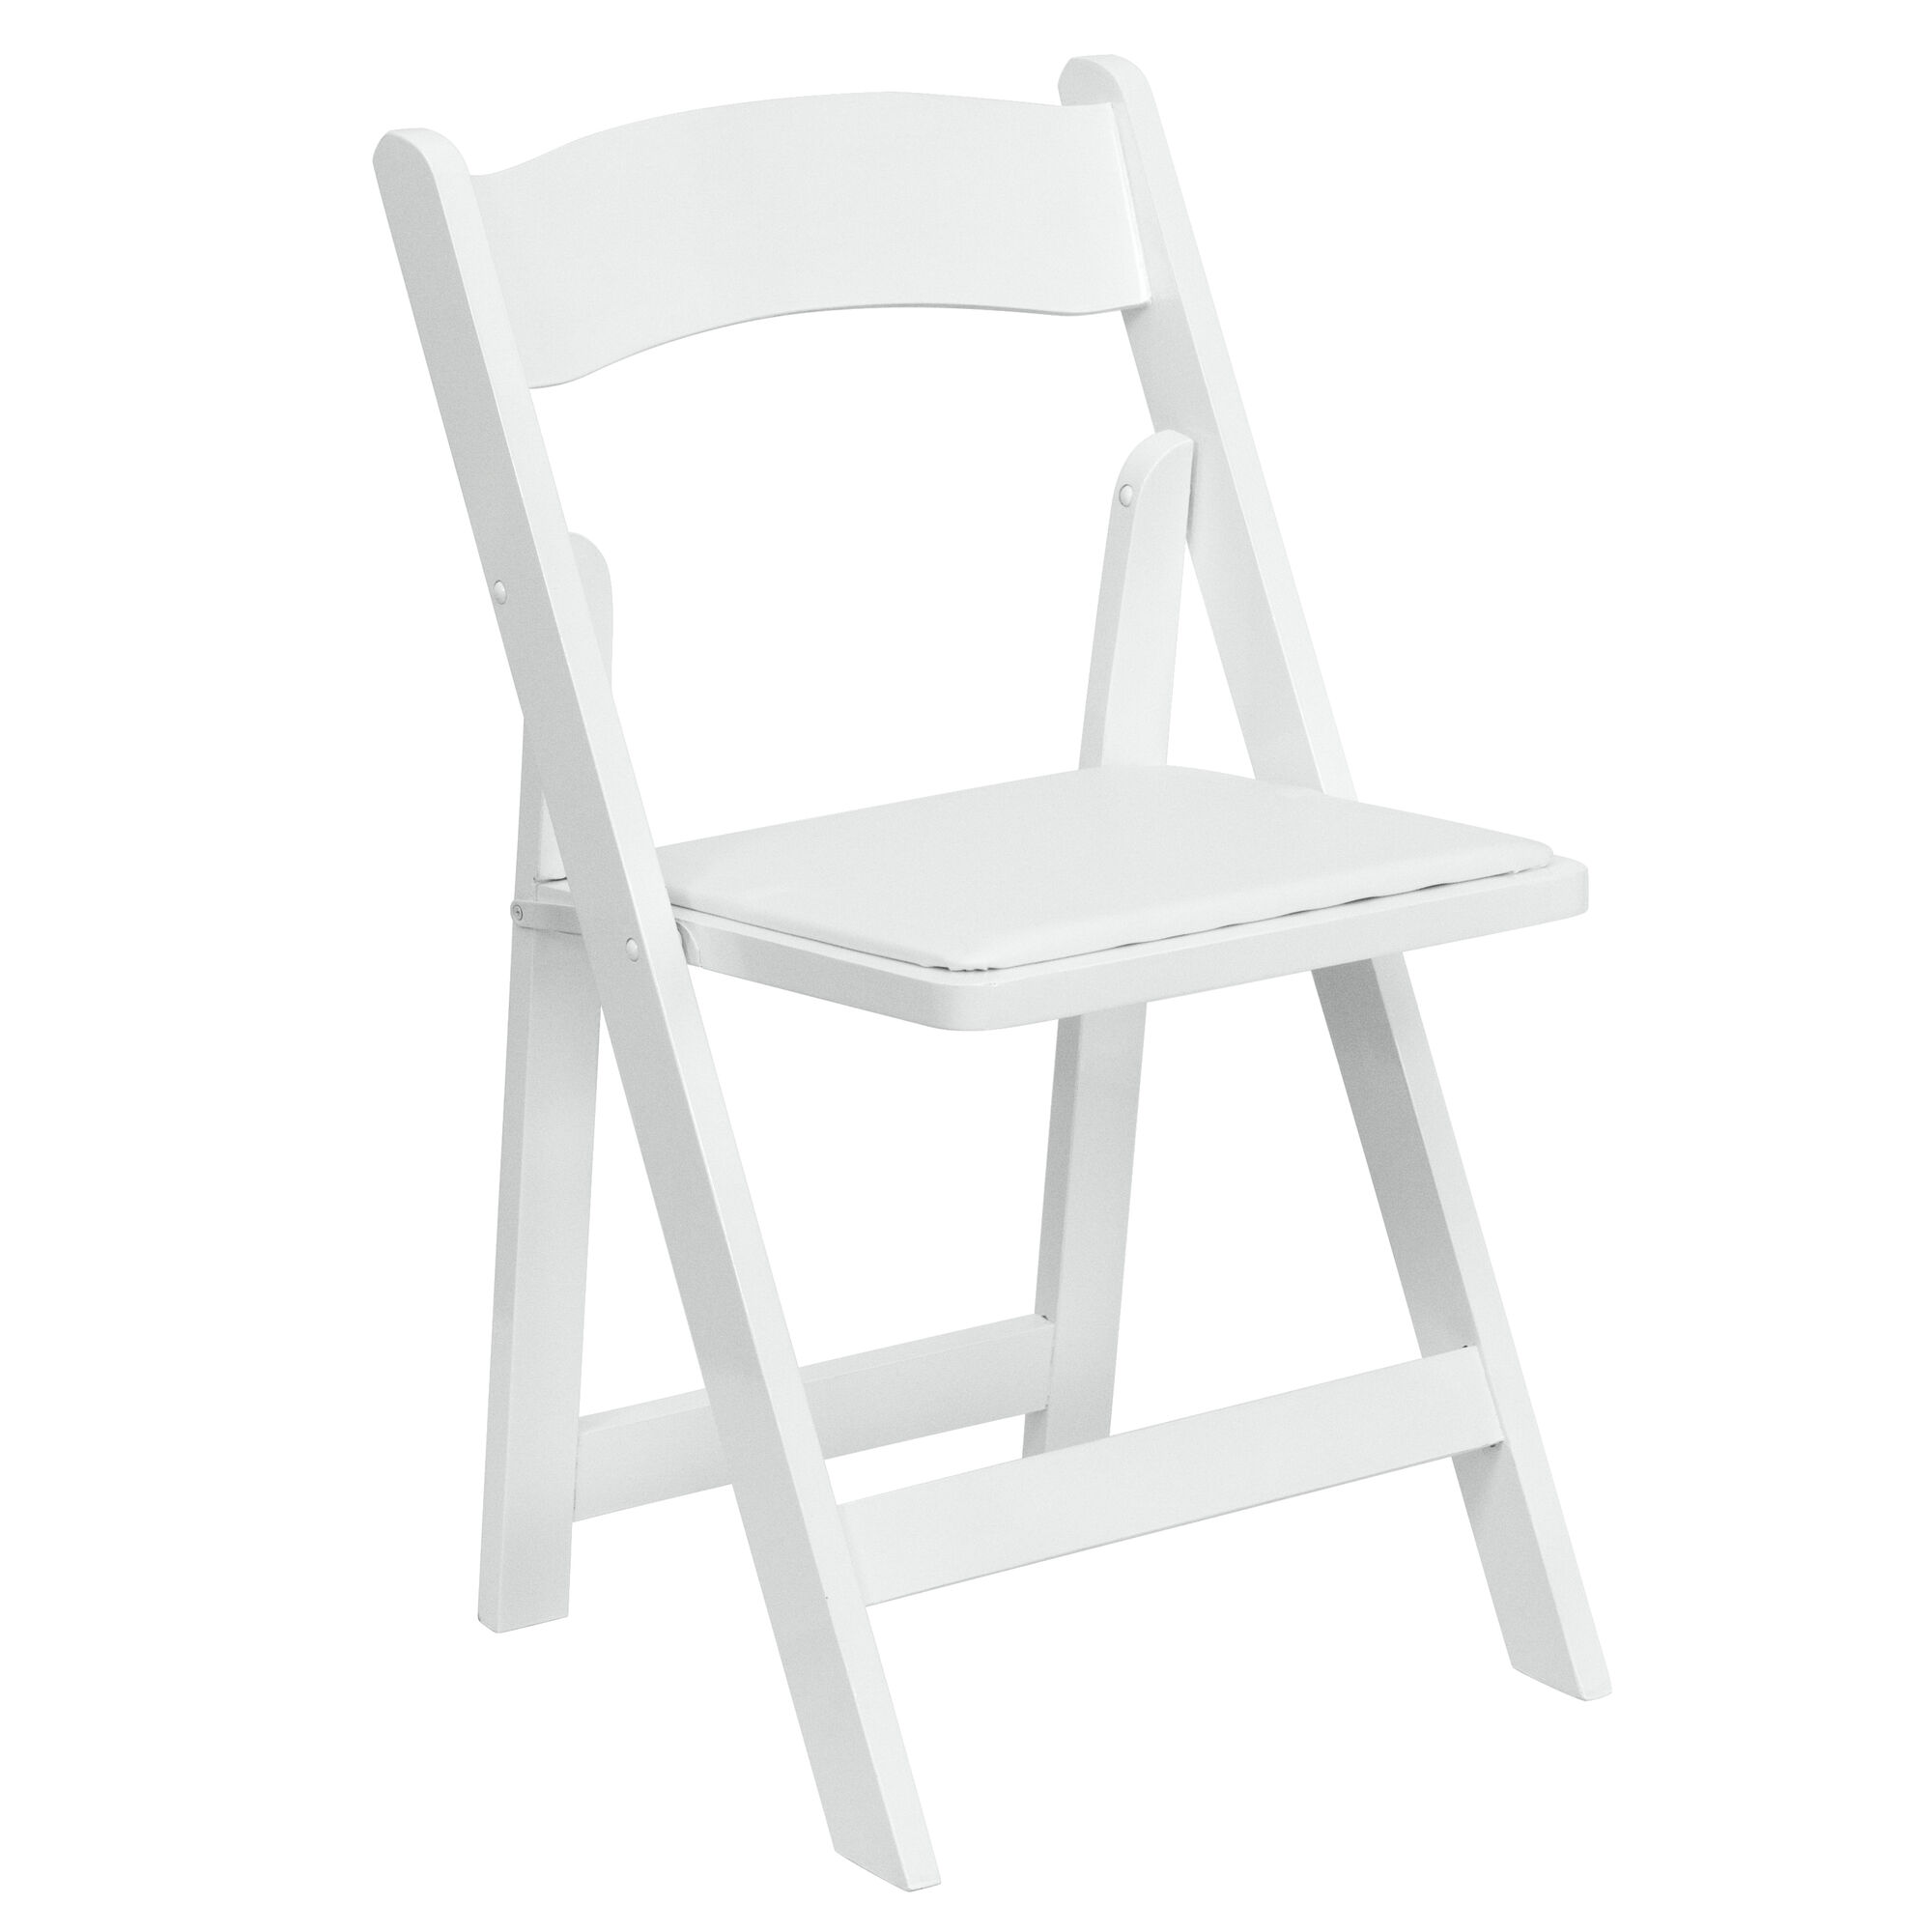 Surprising Hercules Series White Wood Folding Chair With Vinyl Padded Seat Pabps2019 Chair Design Images Pabps2019Com